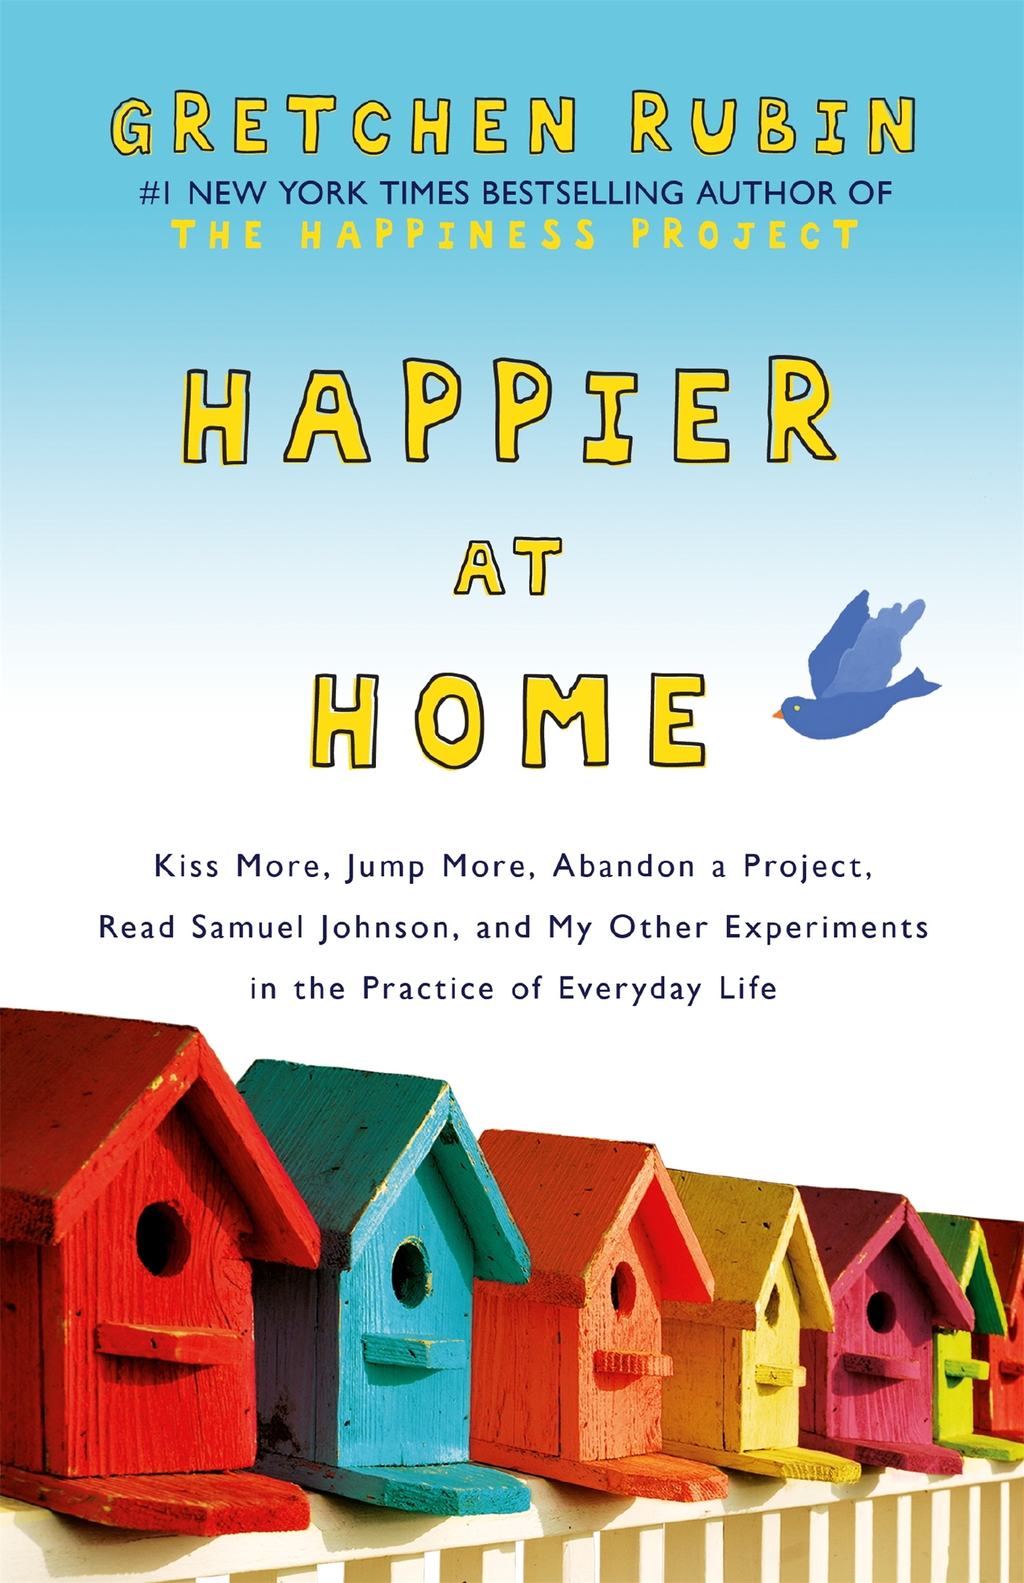 Happier at Home Kiss More,  Jump More,  Abandon a Project,  Read Samuel Johnson,  and My Other Experiments in the Practice of Everyday Life